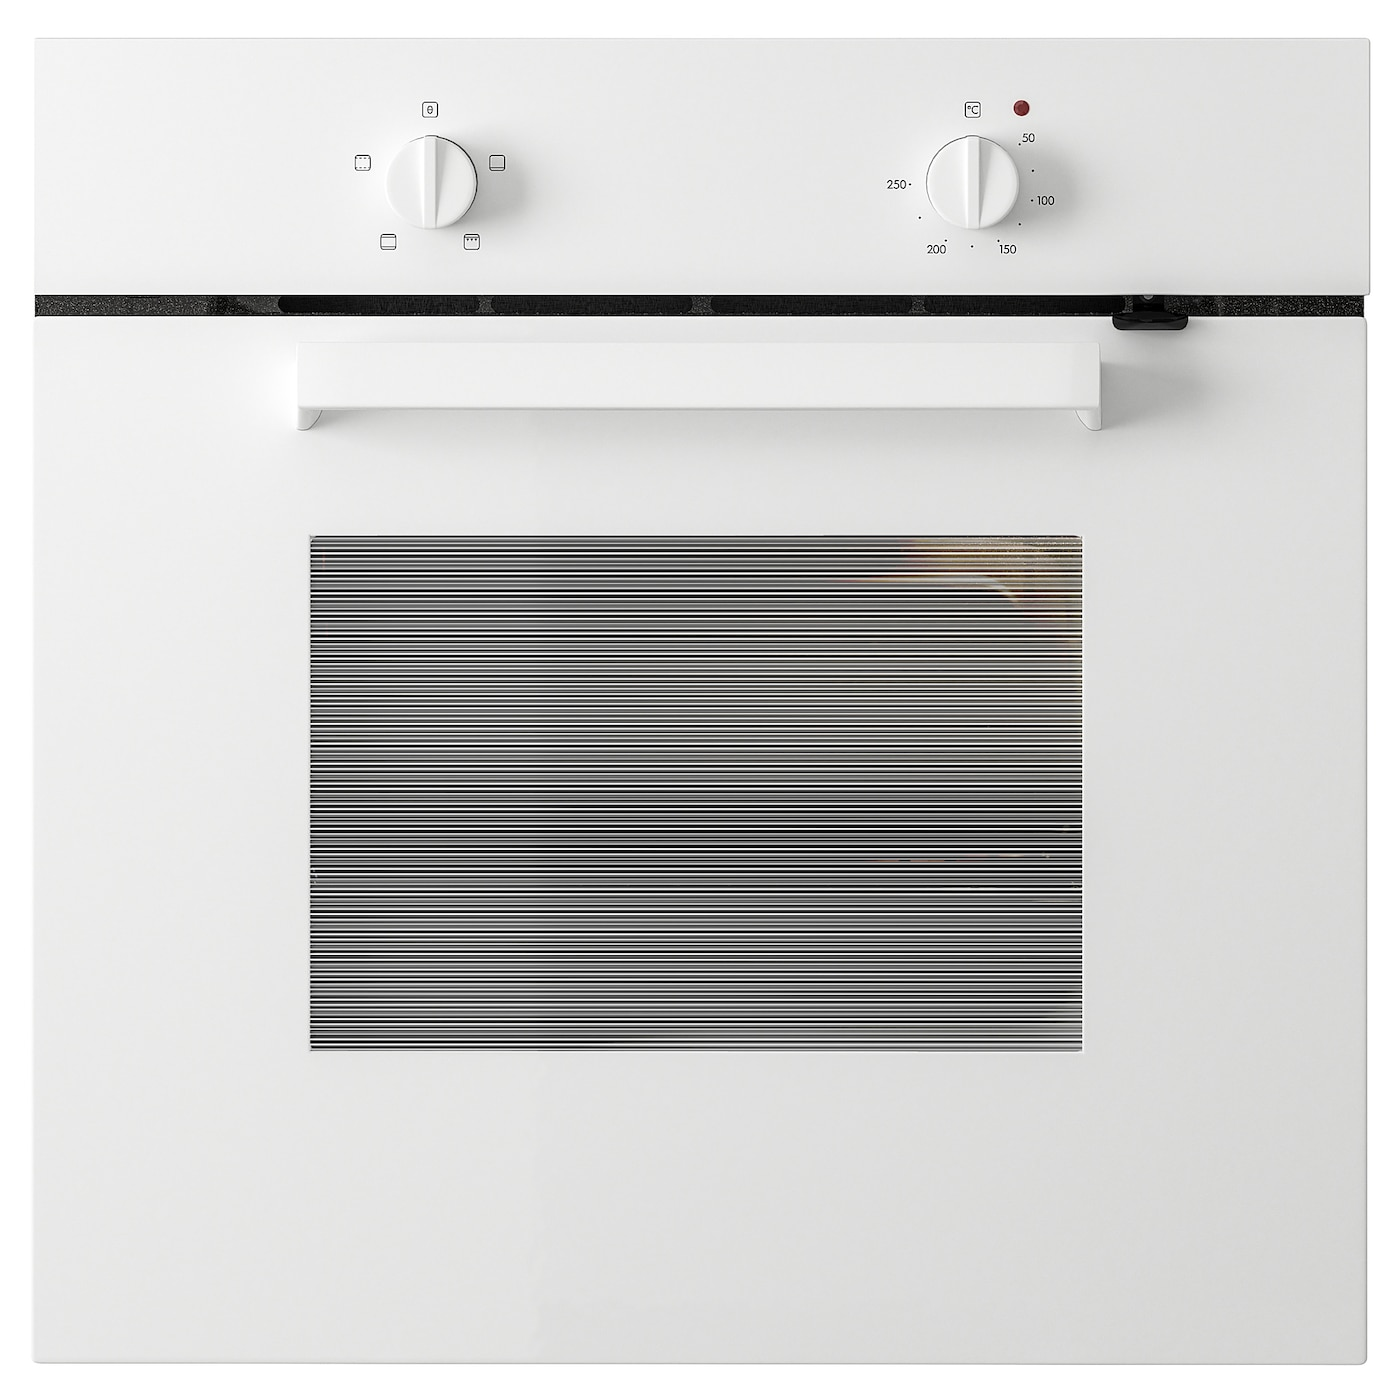 IKEA LAGAN oven Oven door with child-safety lock improves safety in the kitchen.